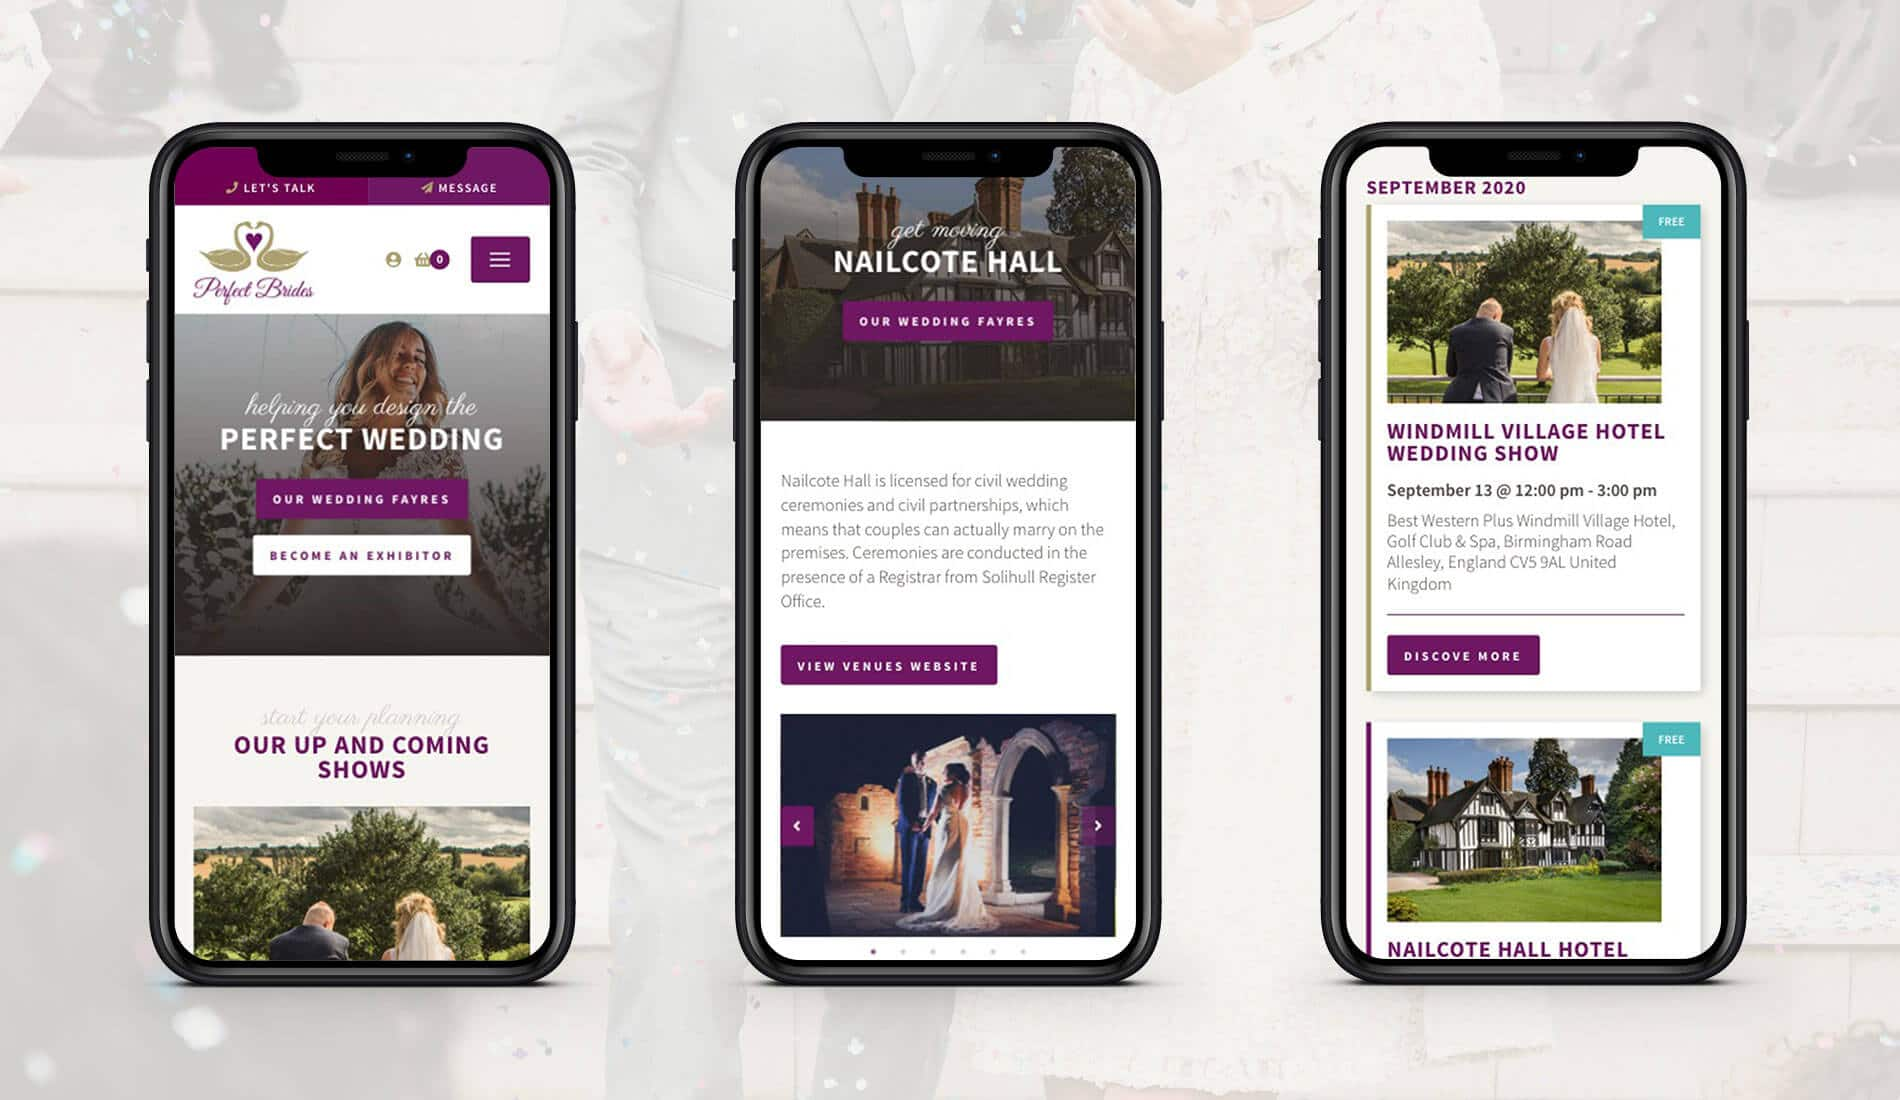 Perfect brides website responsive design across mobile screens